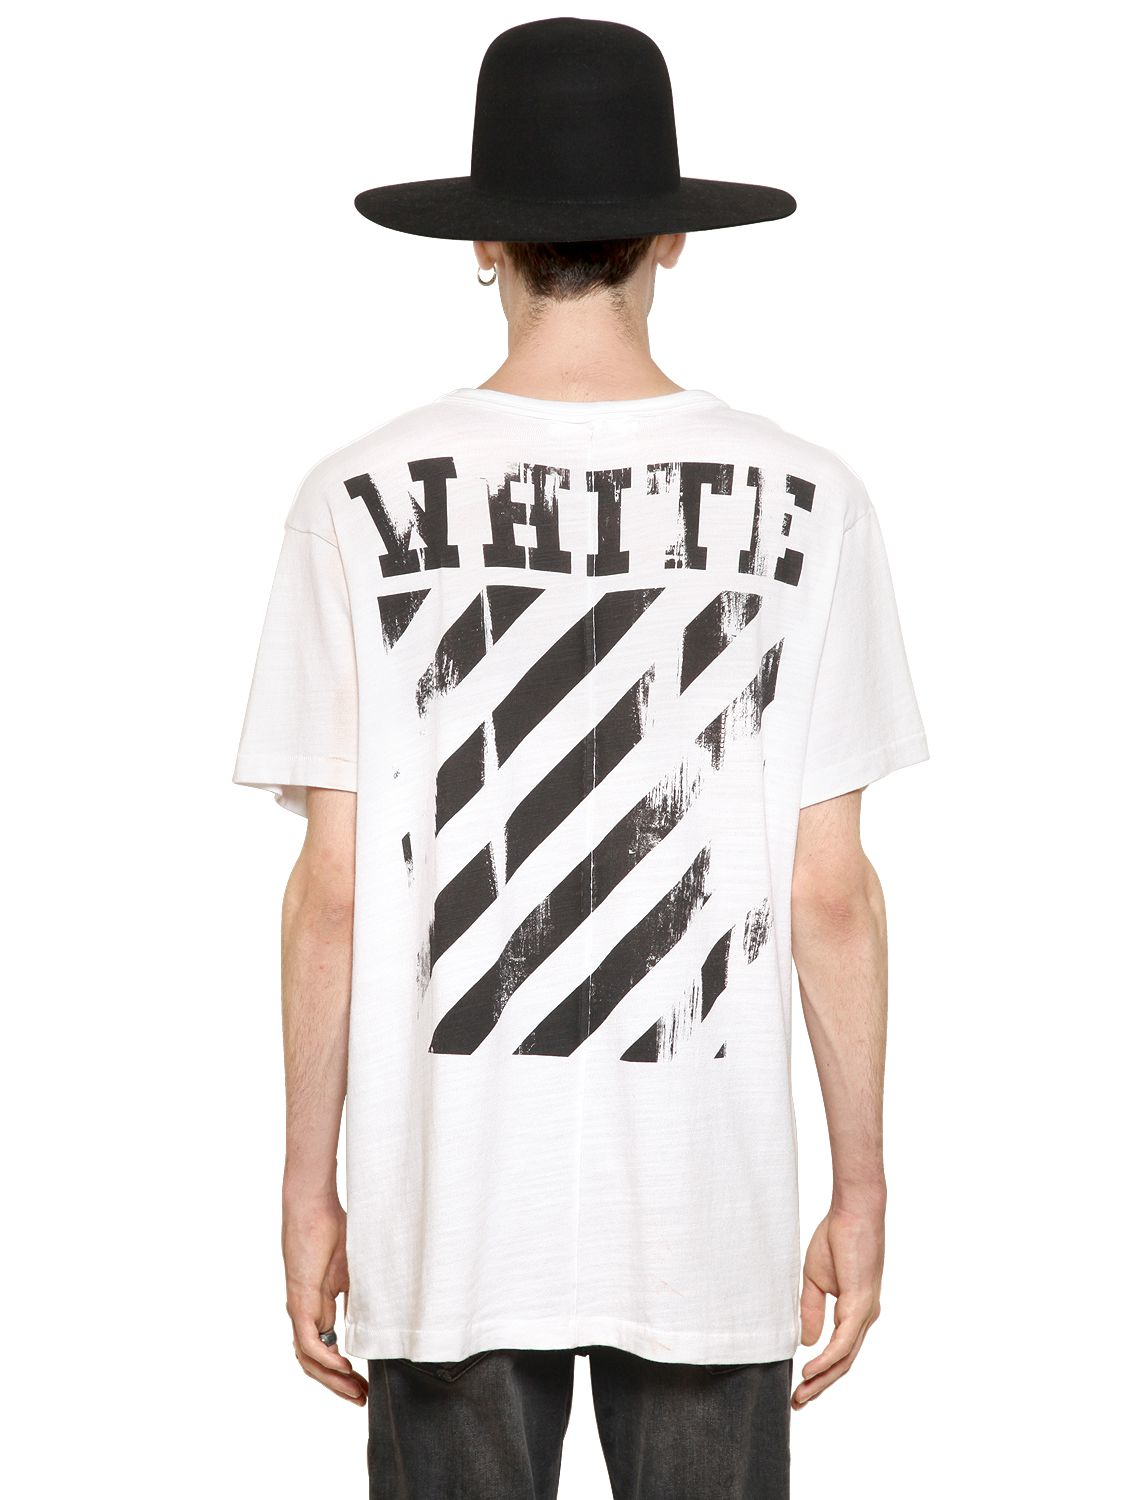 off white c o virgil abloh caravaggio annunciation jersey t shirt in white for men lyst. Black Bedroom Furniture Sets. Home Design Ideas